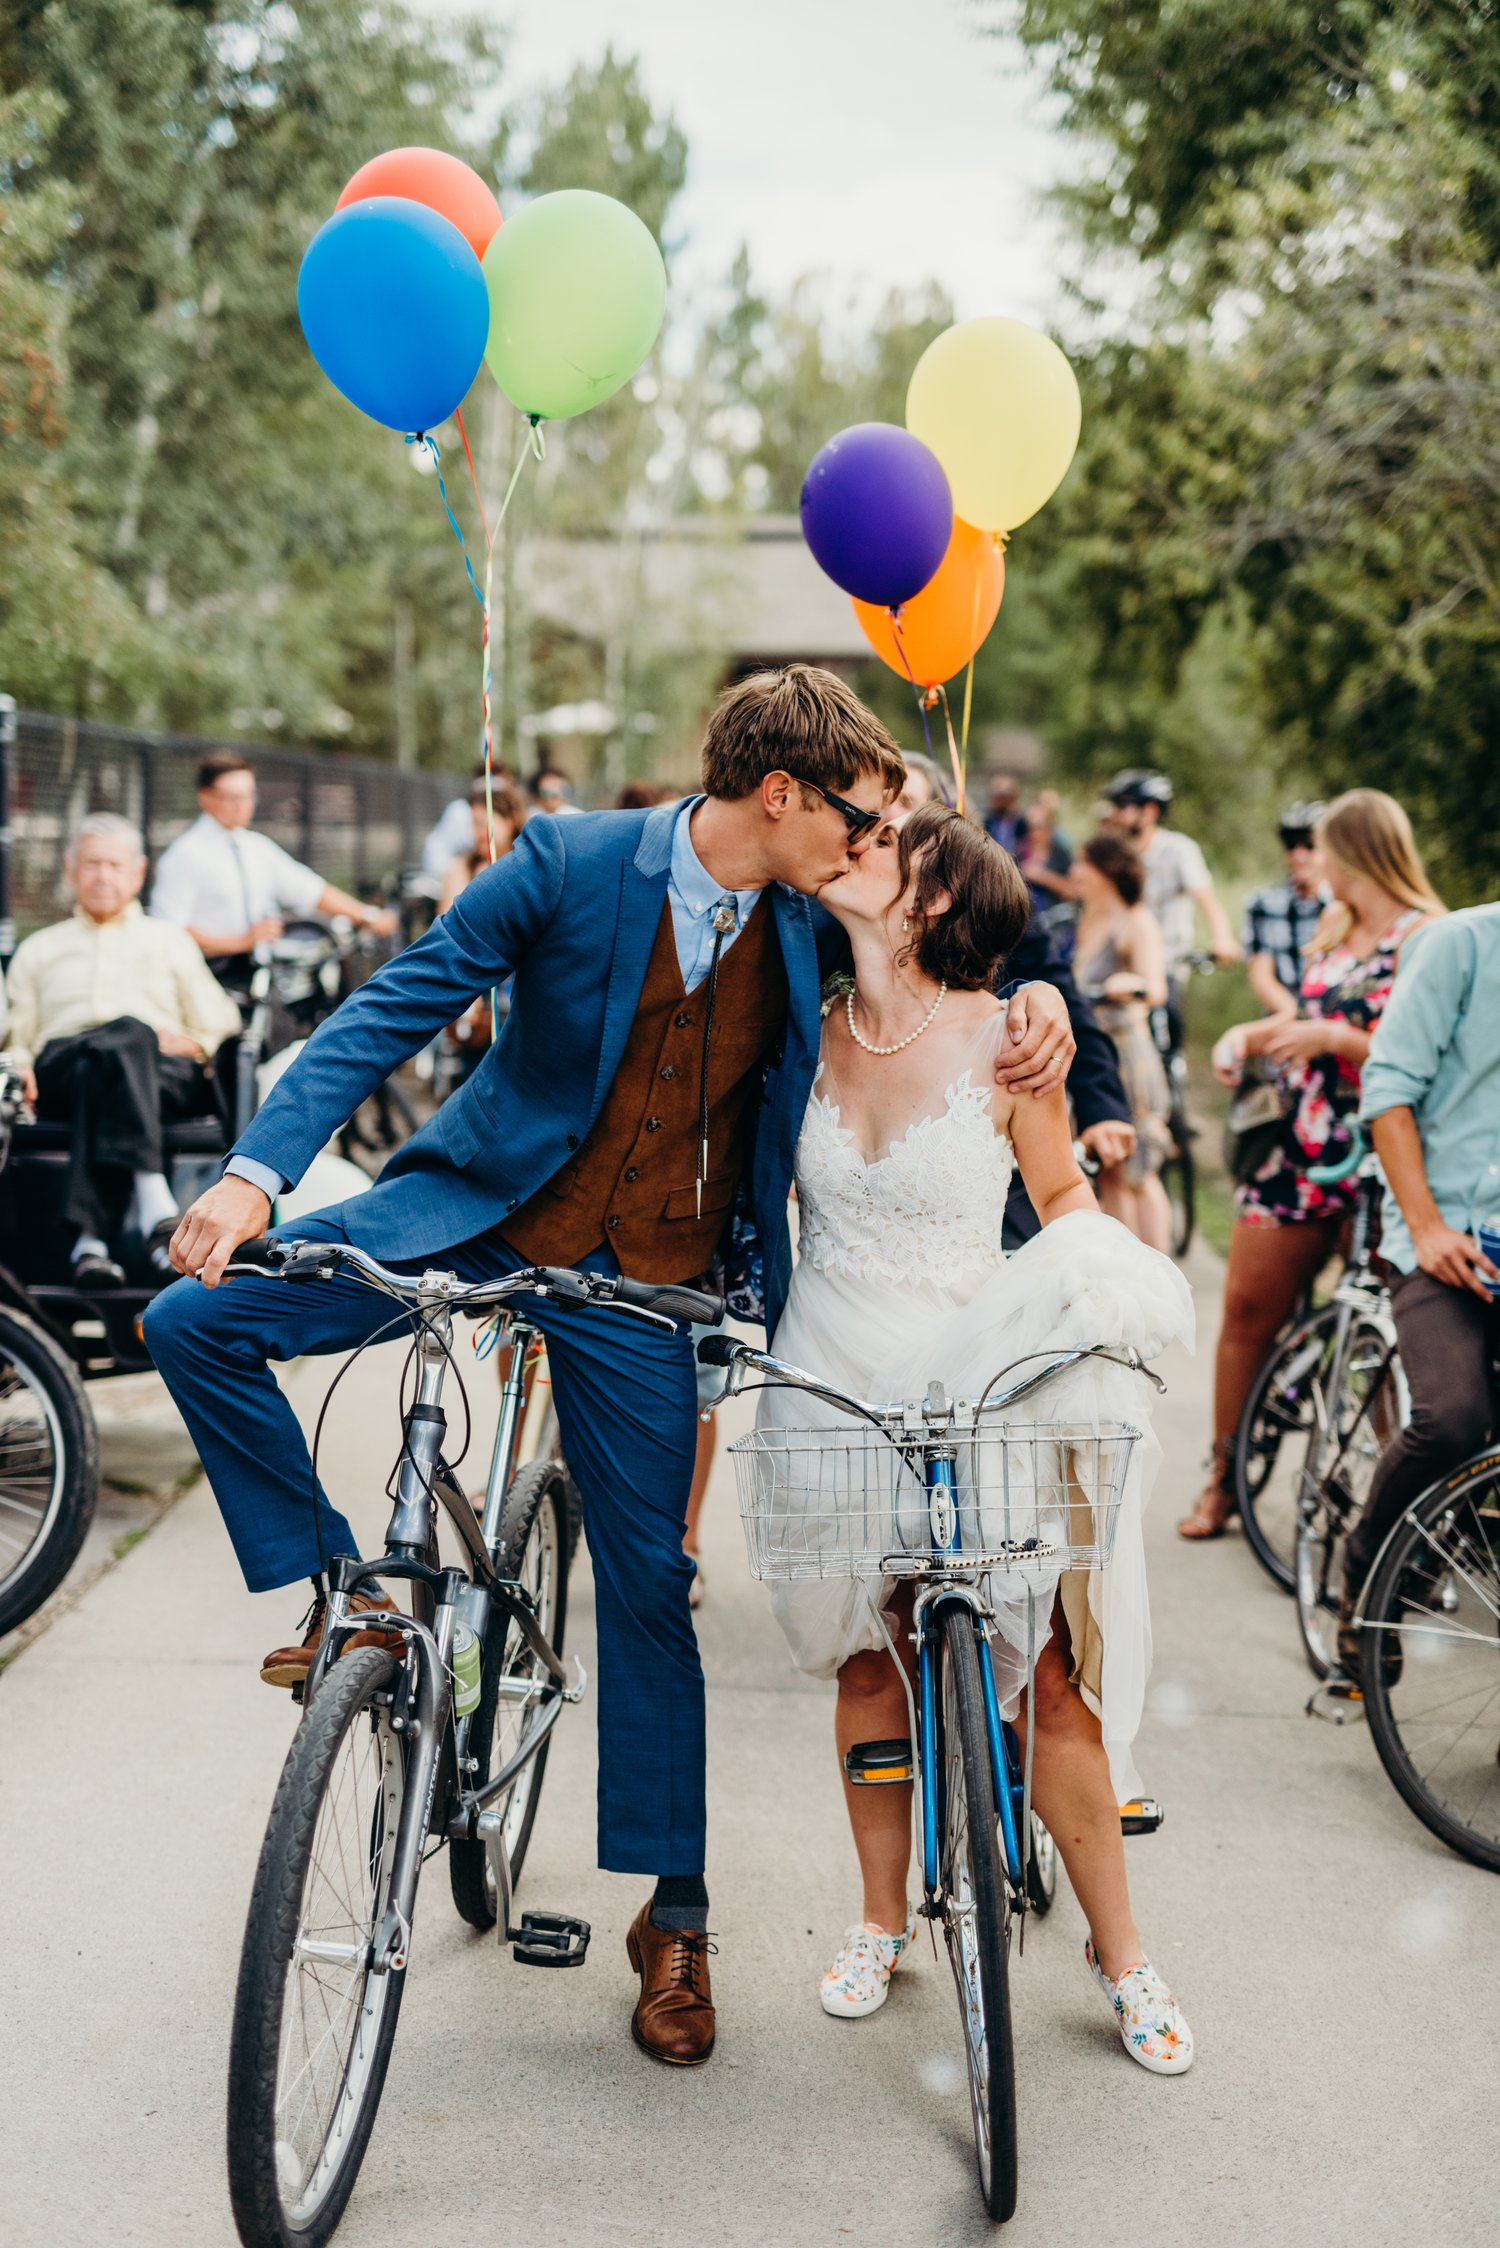 Sarah & Ben's Steamboat Springs, Colorado Bicycle Wedding